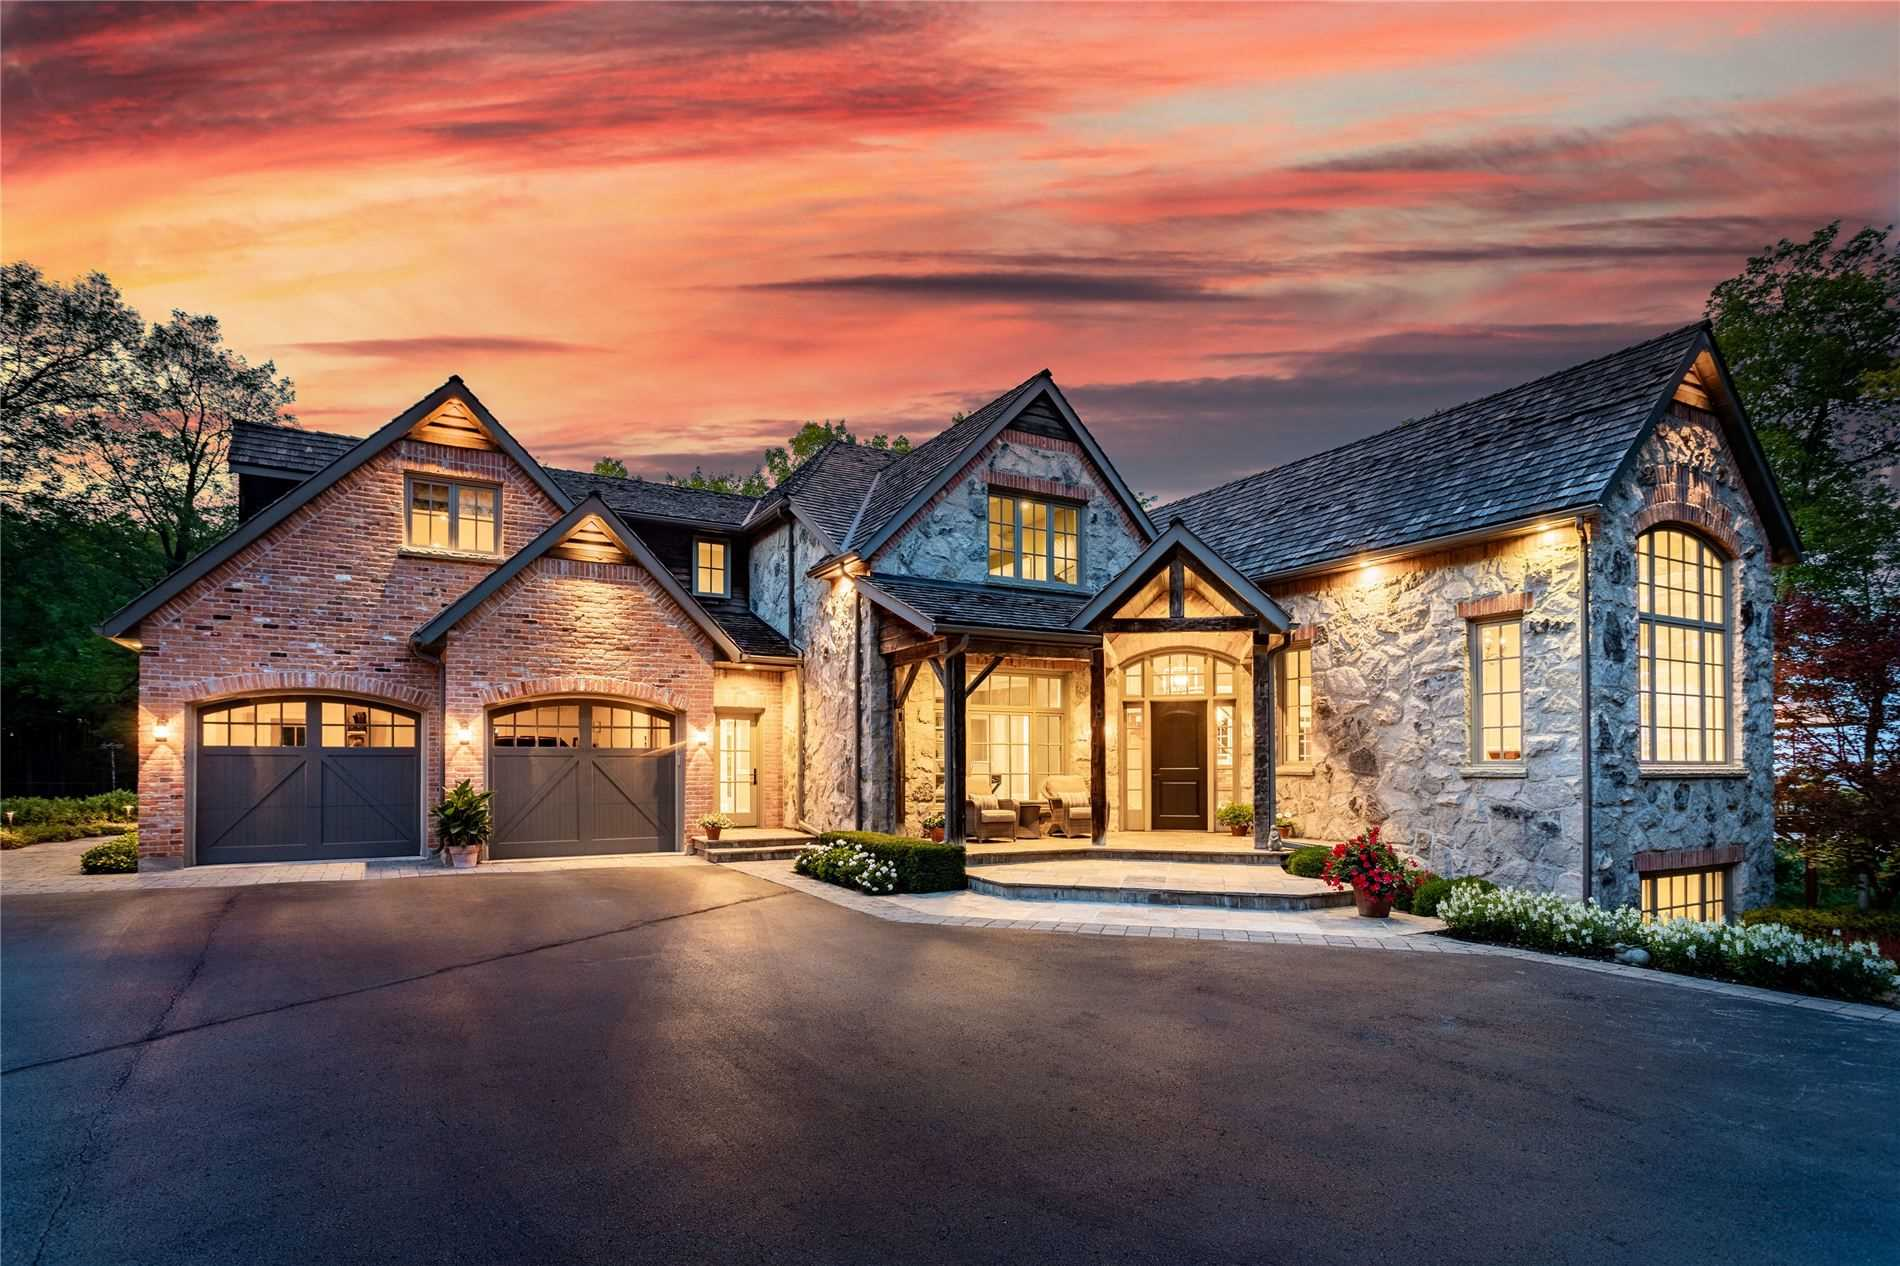 Hidden At The Edge Of The Niagara Escarpment You Will Find A Breath Taking Piece Of Paradise. Set On 29.5 Private Acres, Having Over 8000 Sqft, 2000 Linear Ft Of Cliff Frontage, & 200 Degree Unobstructed Views Of The Entire Gta. The 500 Metre Driveway Takes You To This Fully Custom Built 2 Car Garage Estate Home W/4 Car Coach House. An Architectural Masterpiece Adorned W/Reclaimed 100 Year Old Brick & Hand-Cut Stone, & Ample Windows Place W/The View In Mind.